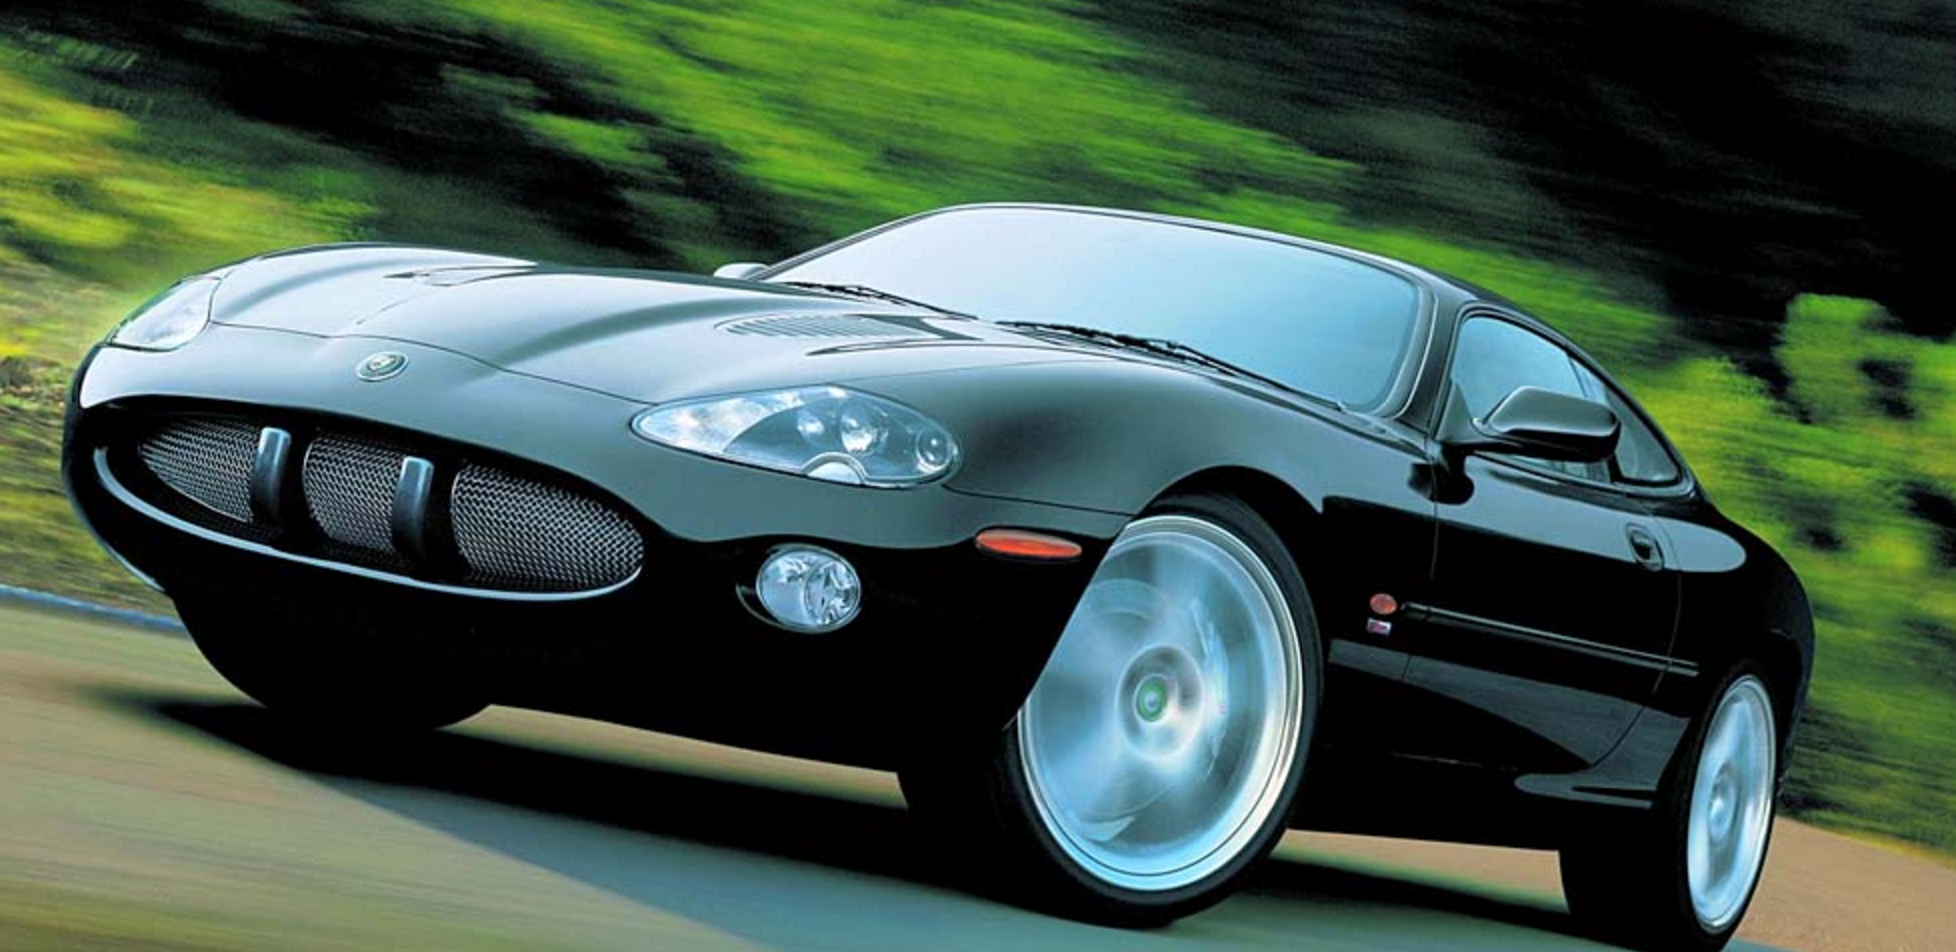 2003 Jaguar Xkr Coupe Supercars Net